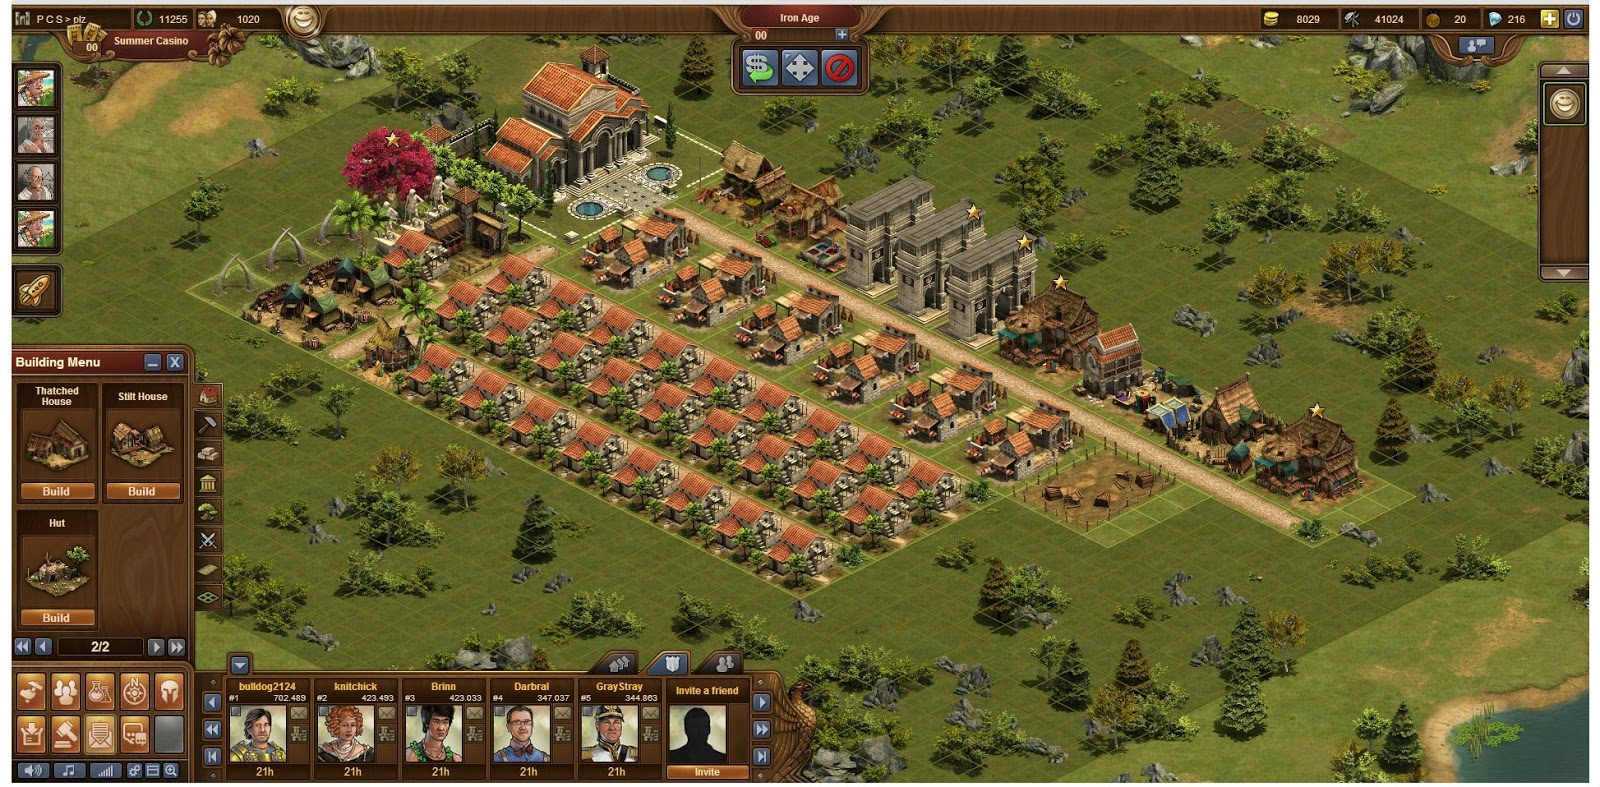 Forge of Empires: Most Efficient Guide - Forge Of Empires Guides